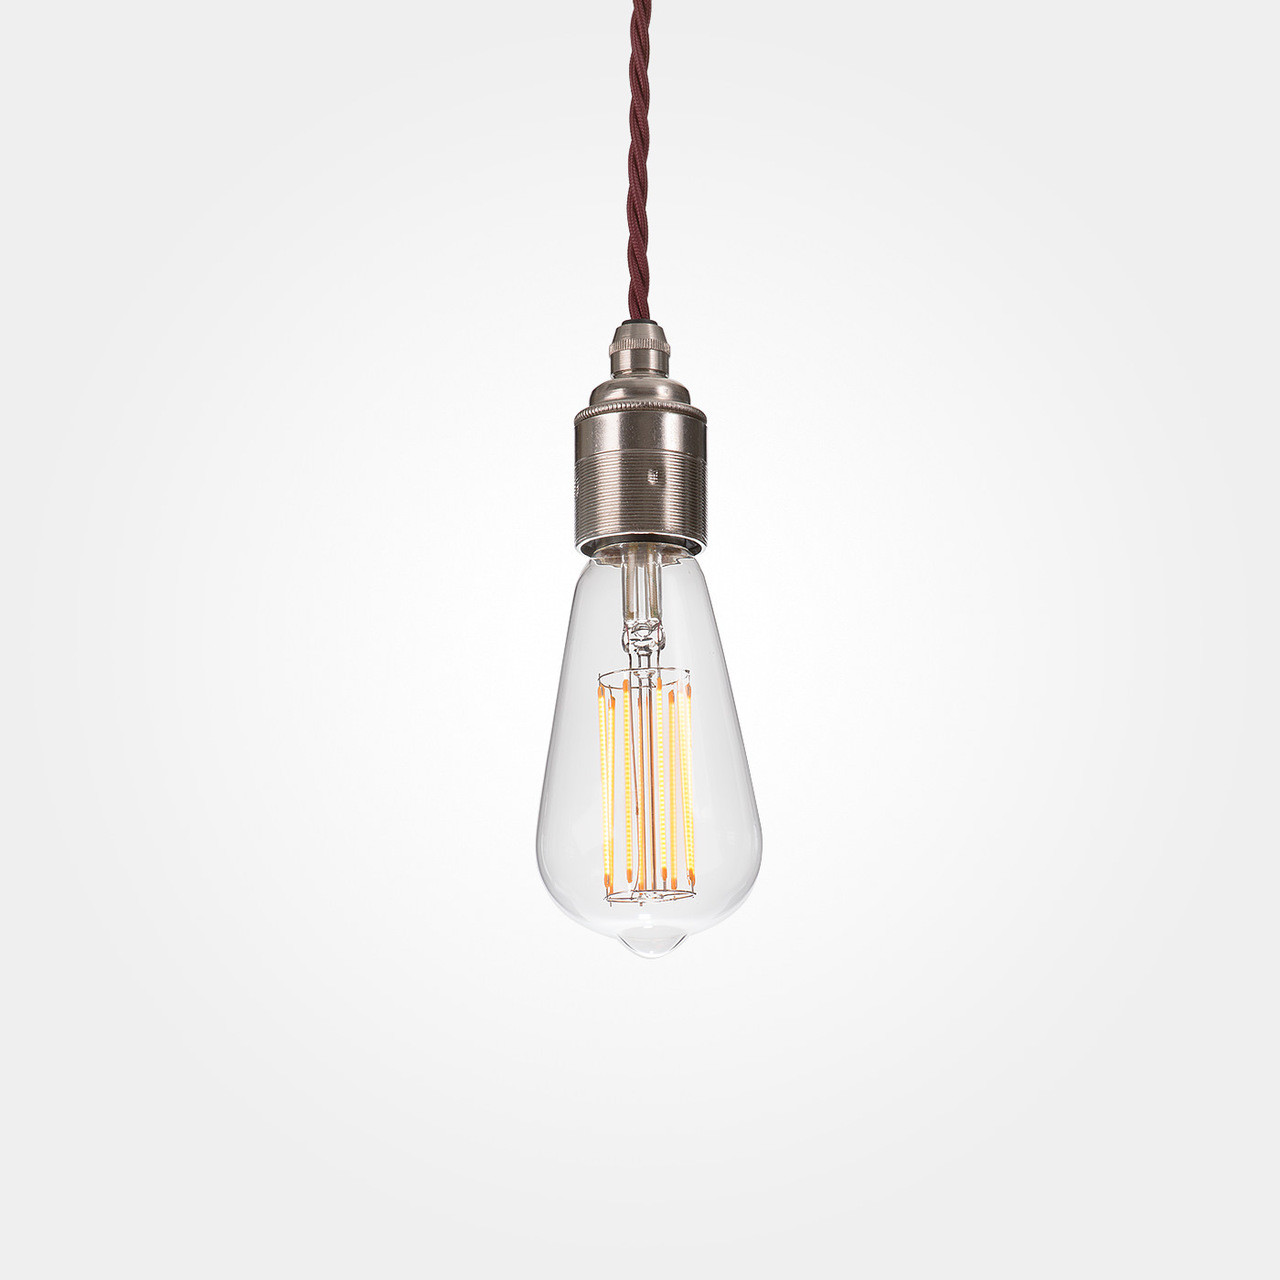 hanging globe edison smoked lighting ceiling smok peared glass il creation pendant industrial lamp light fullxfull products